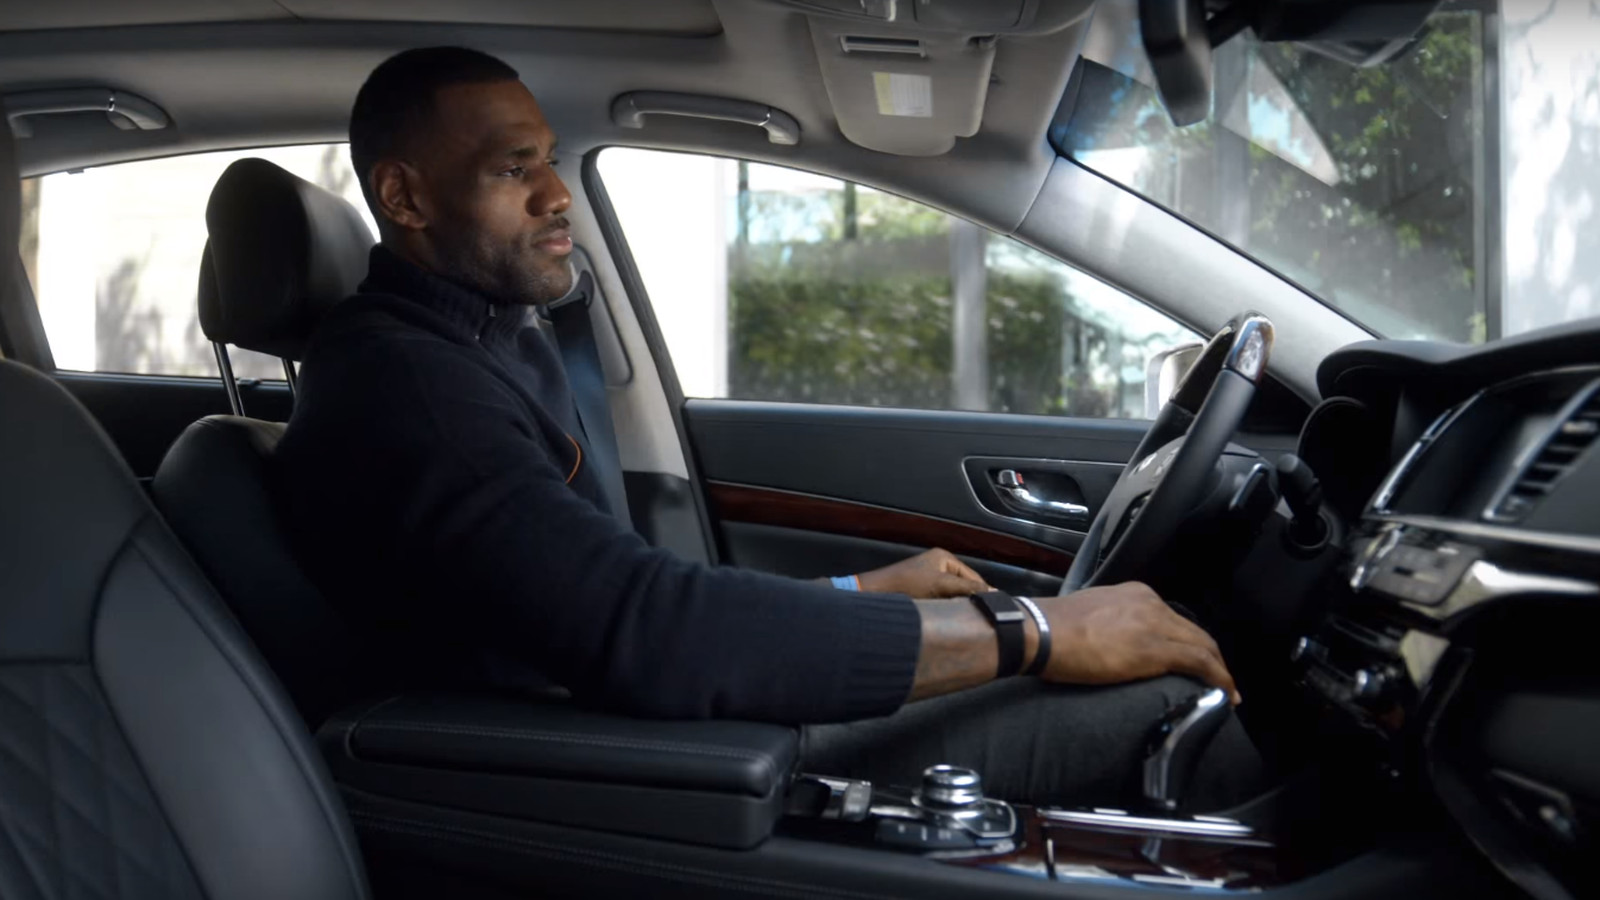 LeBron James swears he really drives a Kia - The Verge